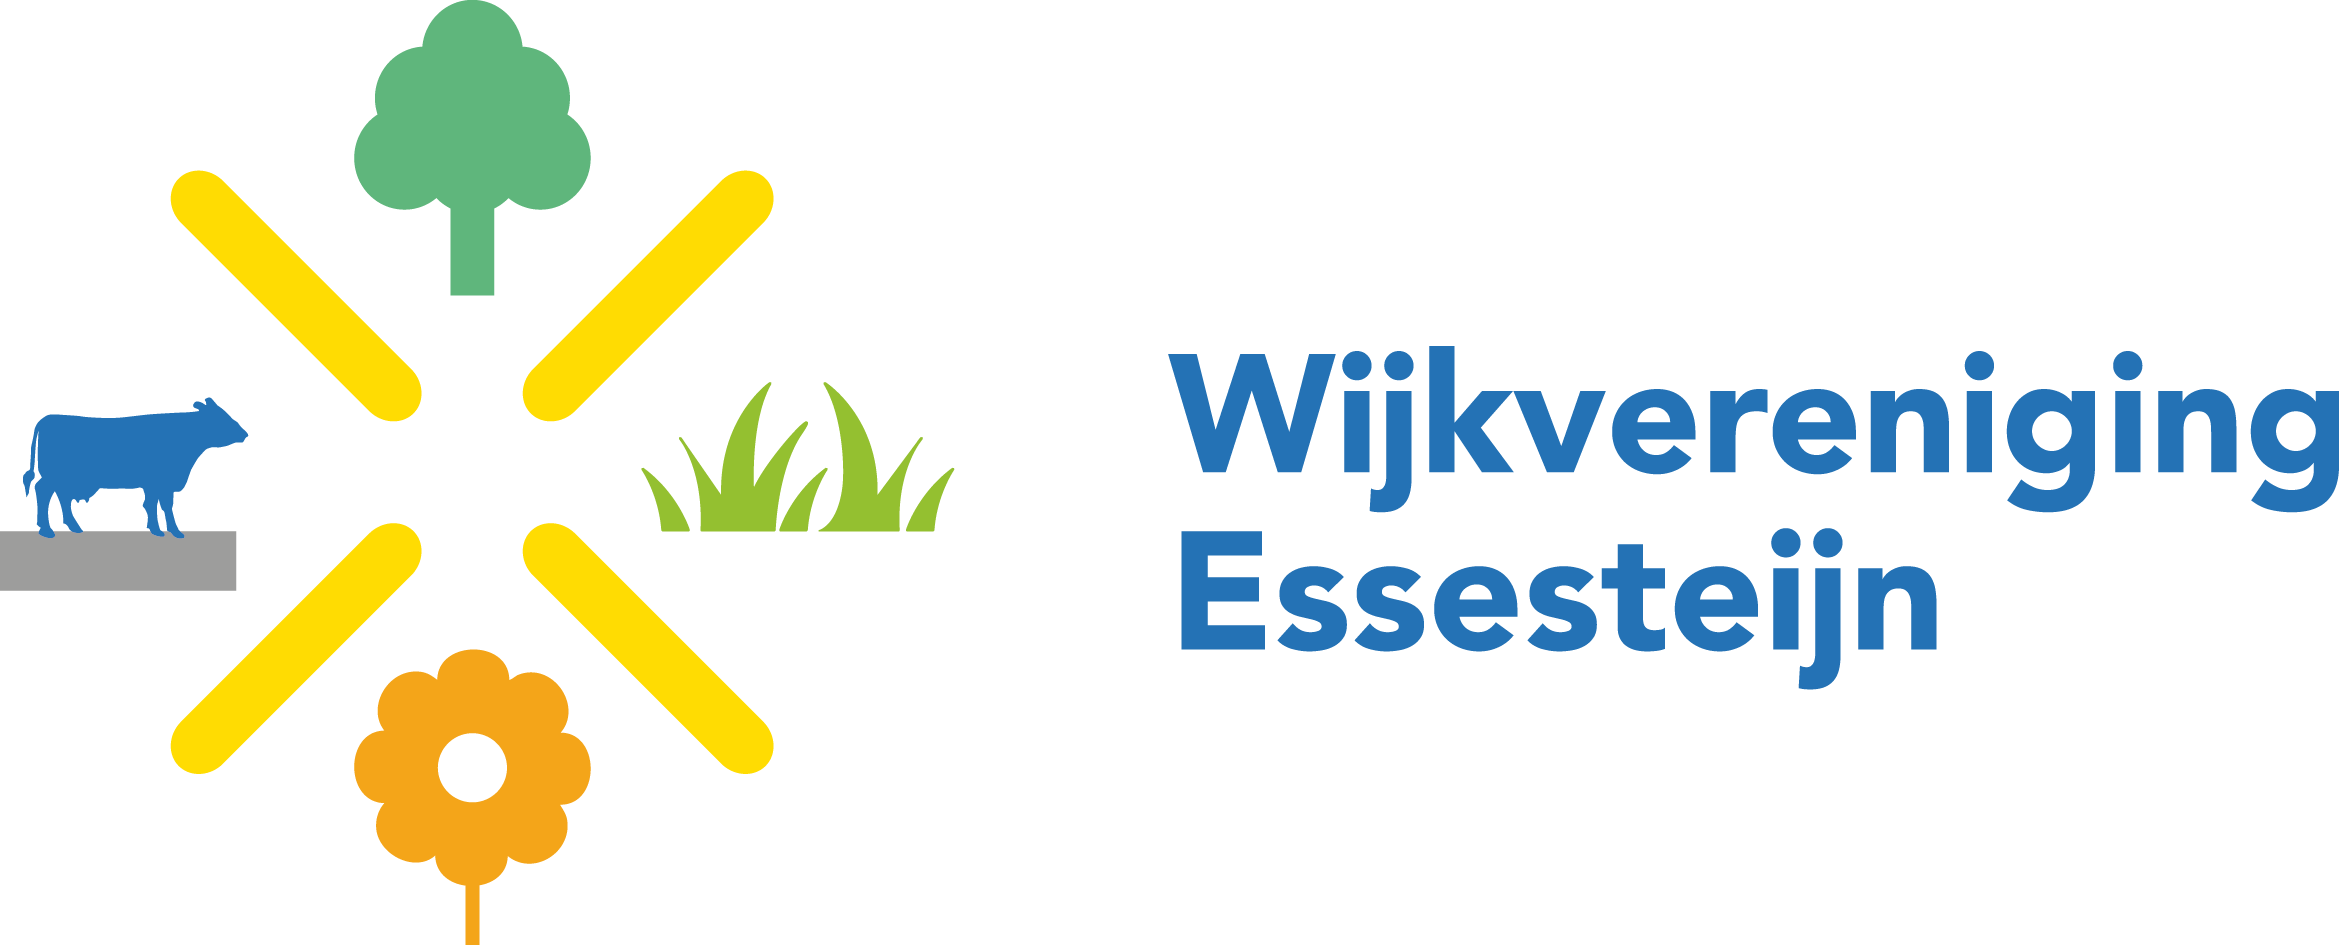 Wijkvereniging Essesteijn